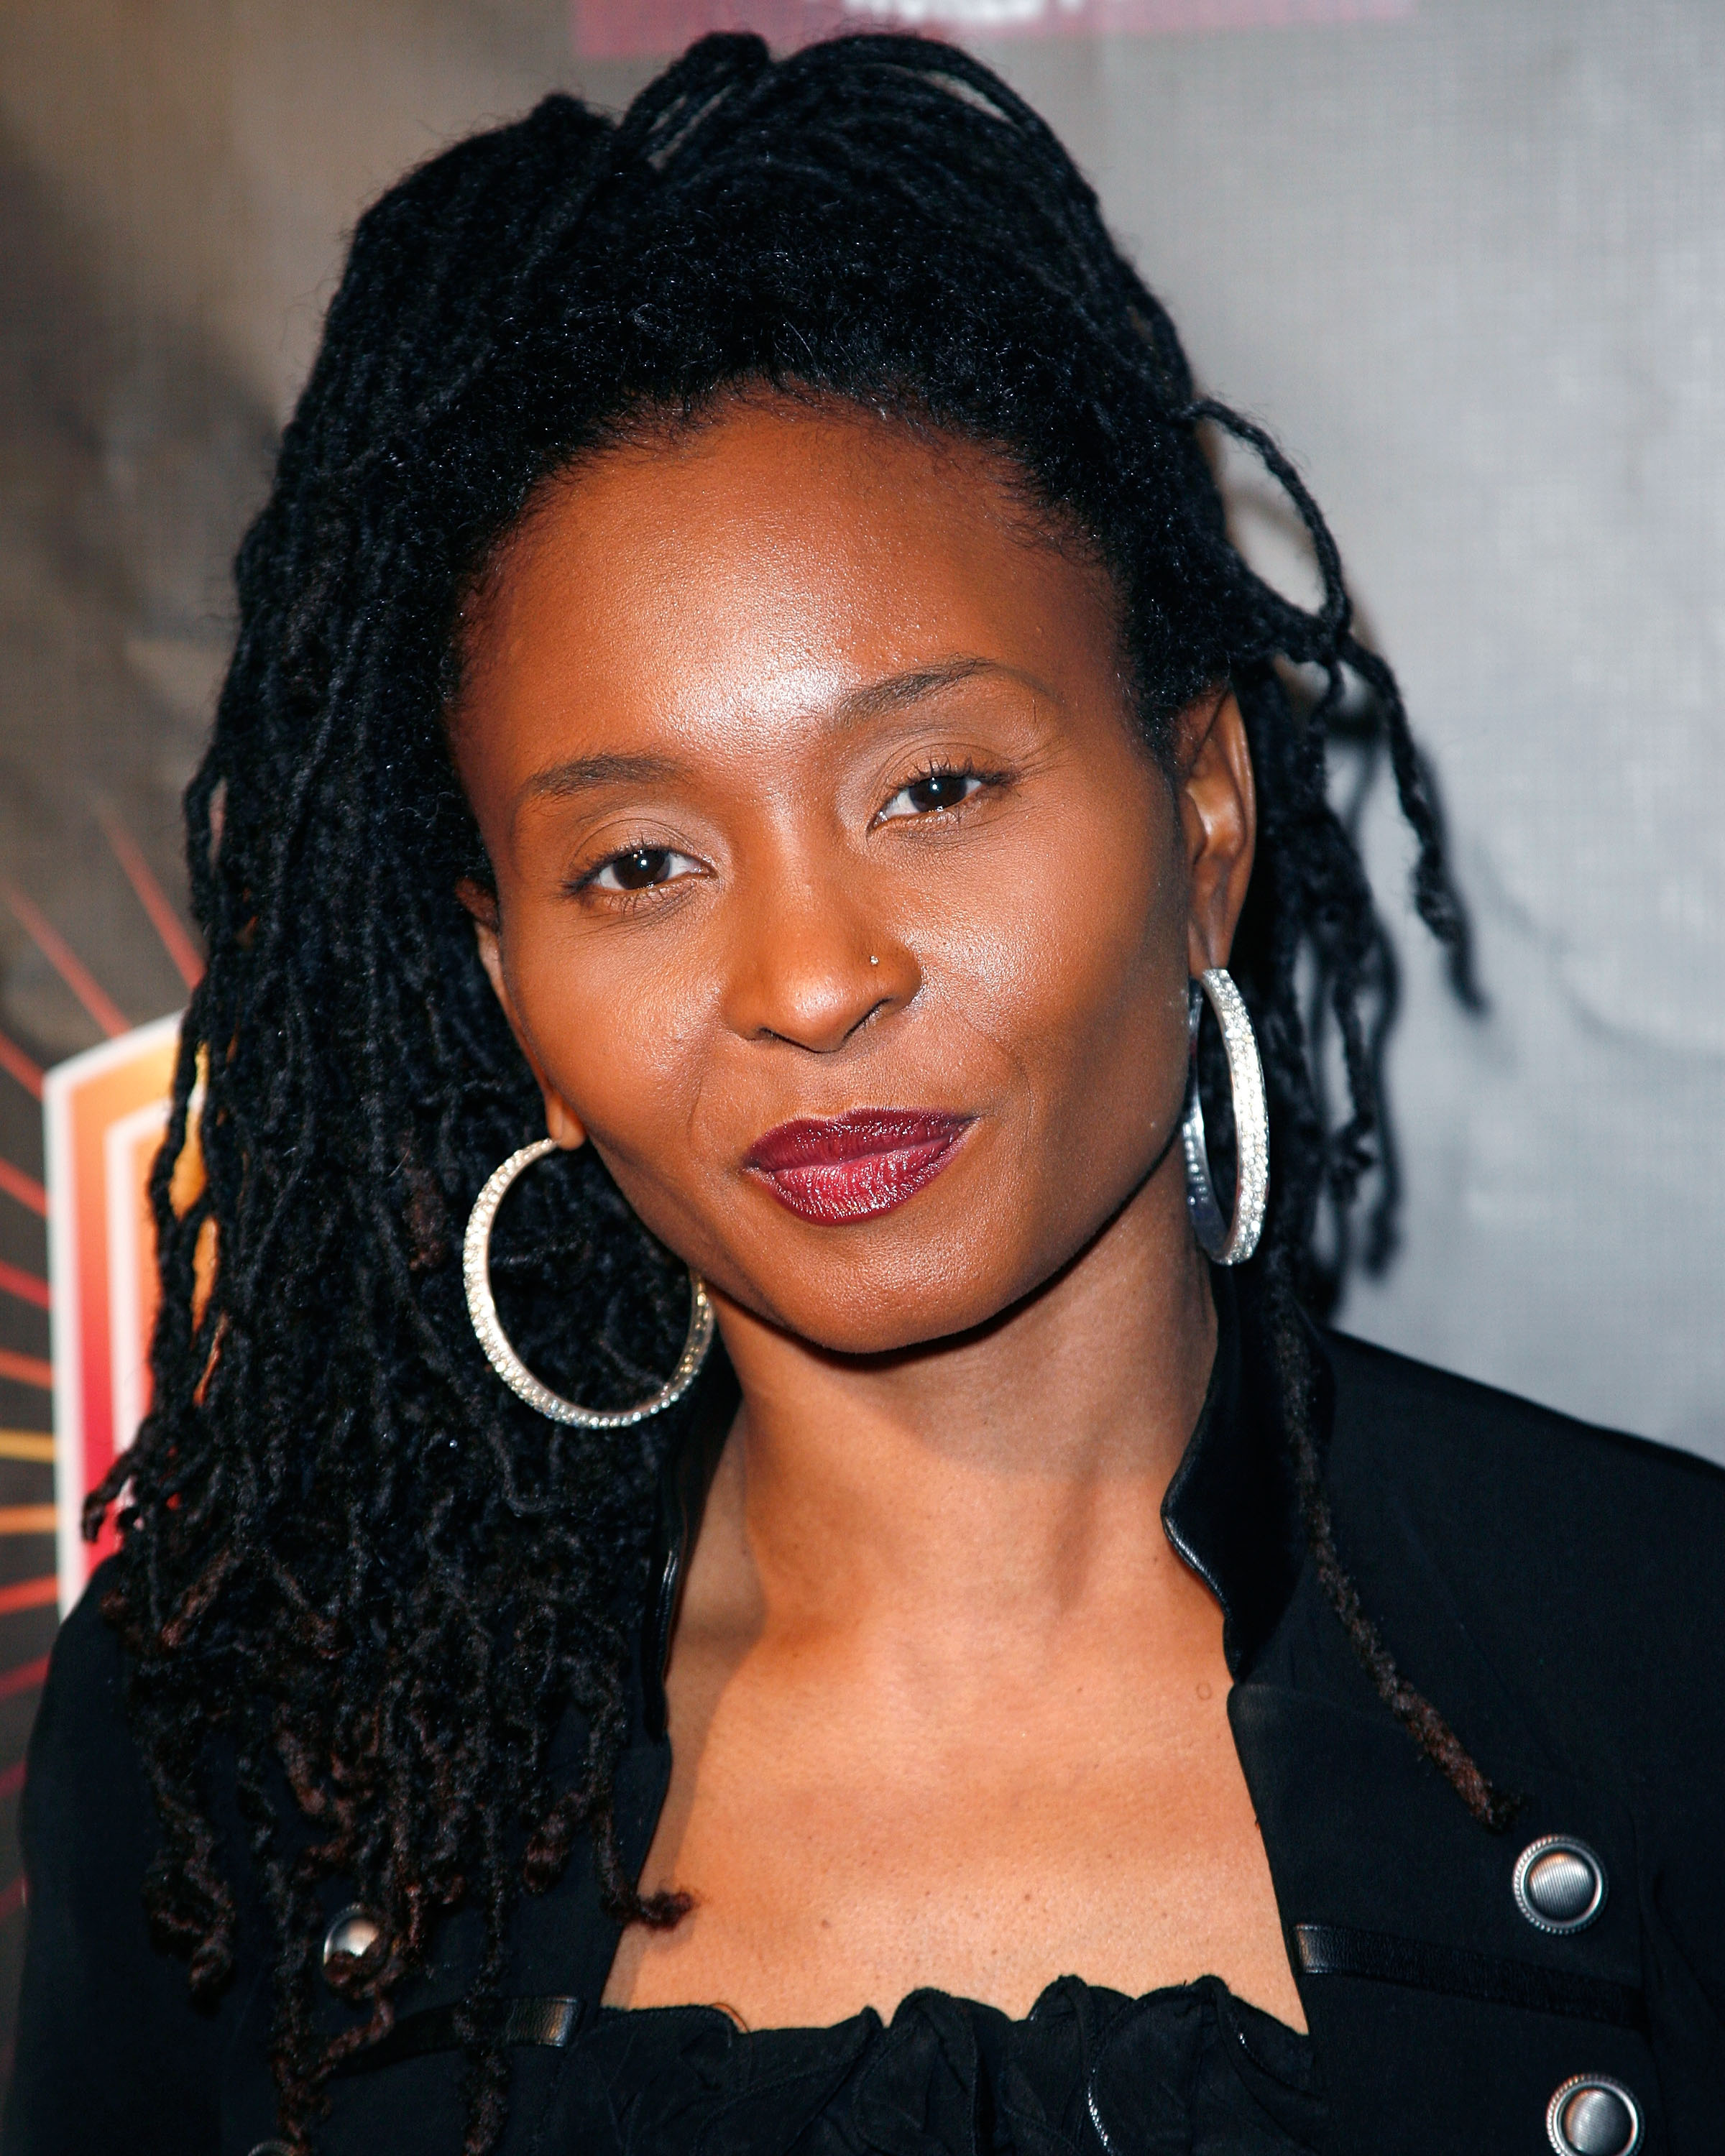 Rapper Dee Barnes arrives at the Luxury Book Launch of  Hip-Hop: A Cultural Odyssey  and the exhibit premiere at The GRAMMY Museum on Feb. 8, 2011, in Los Angeles.